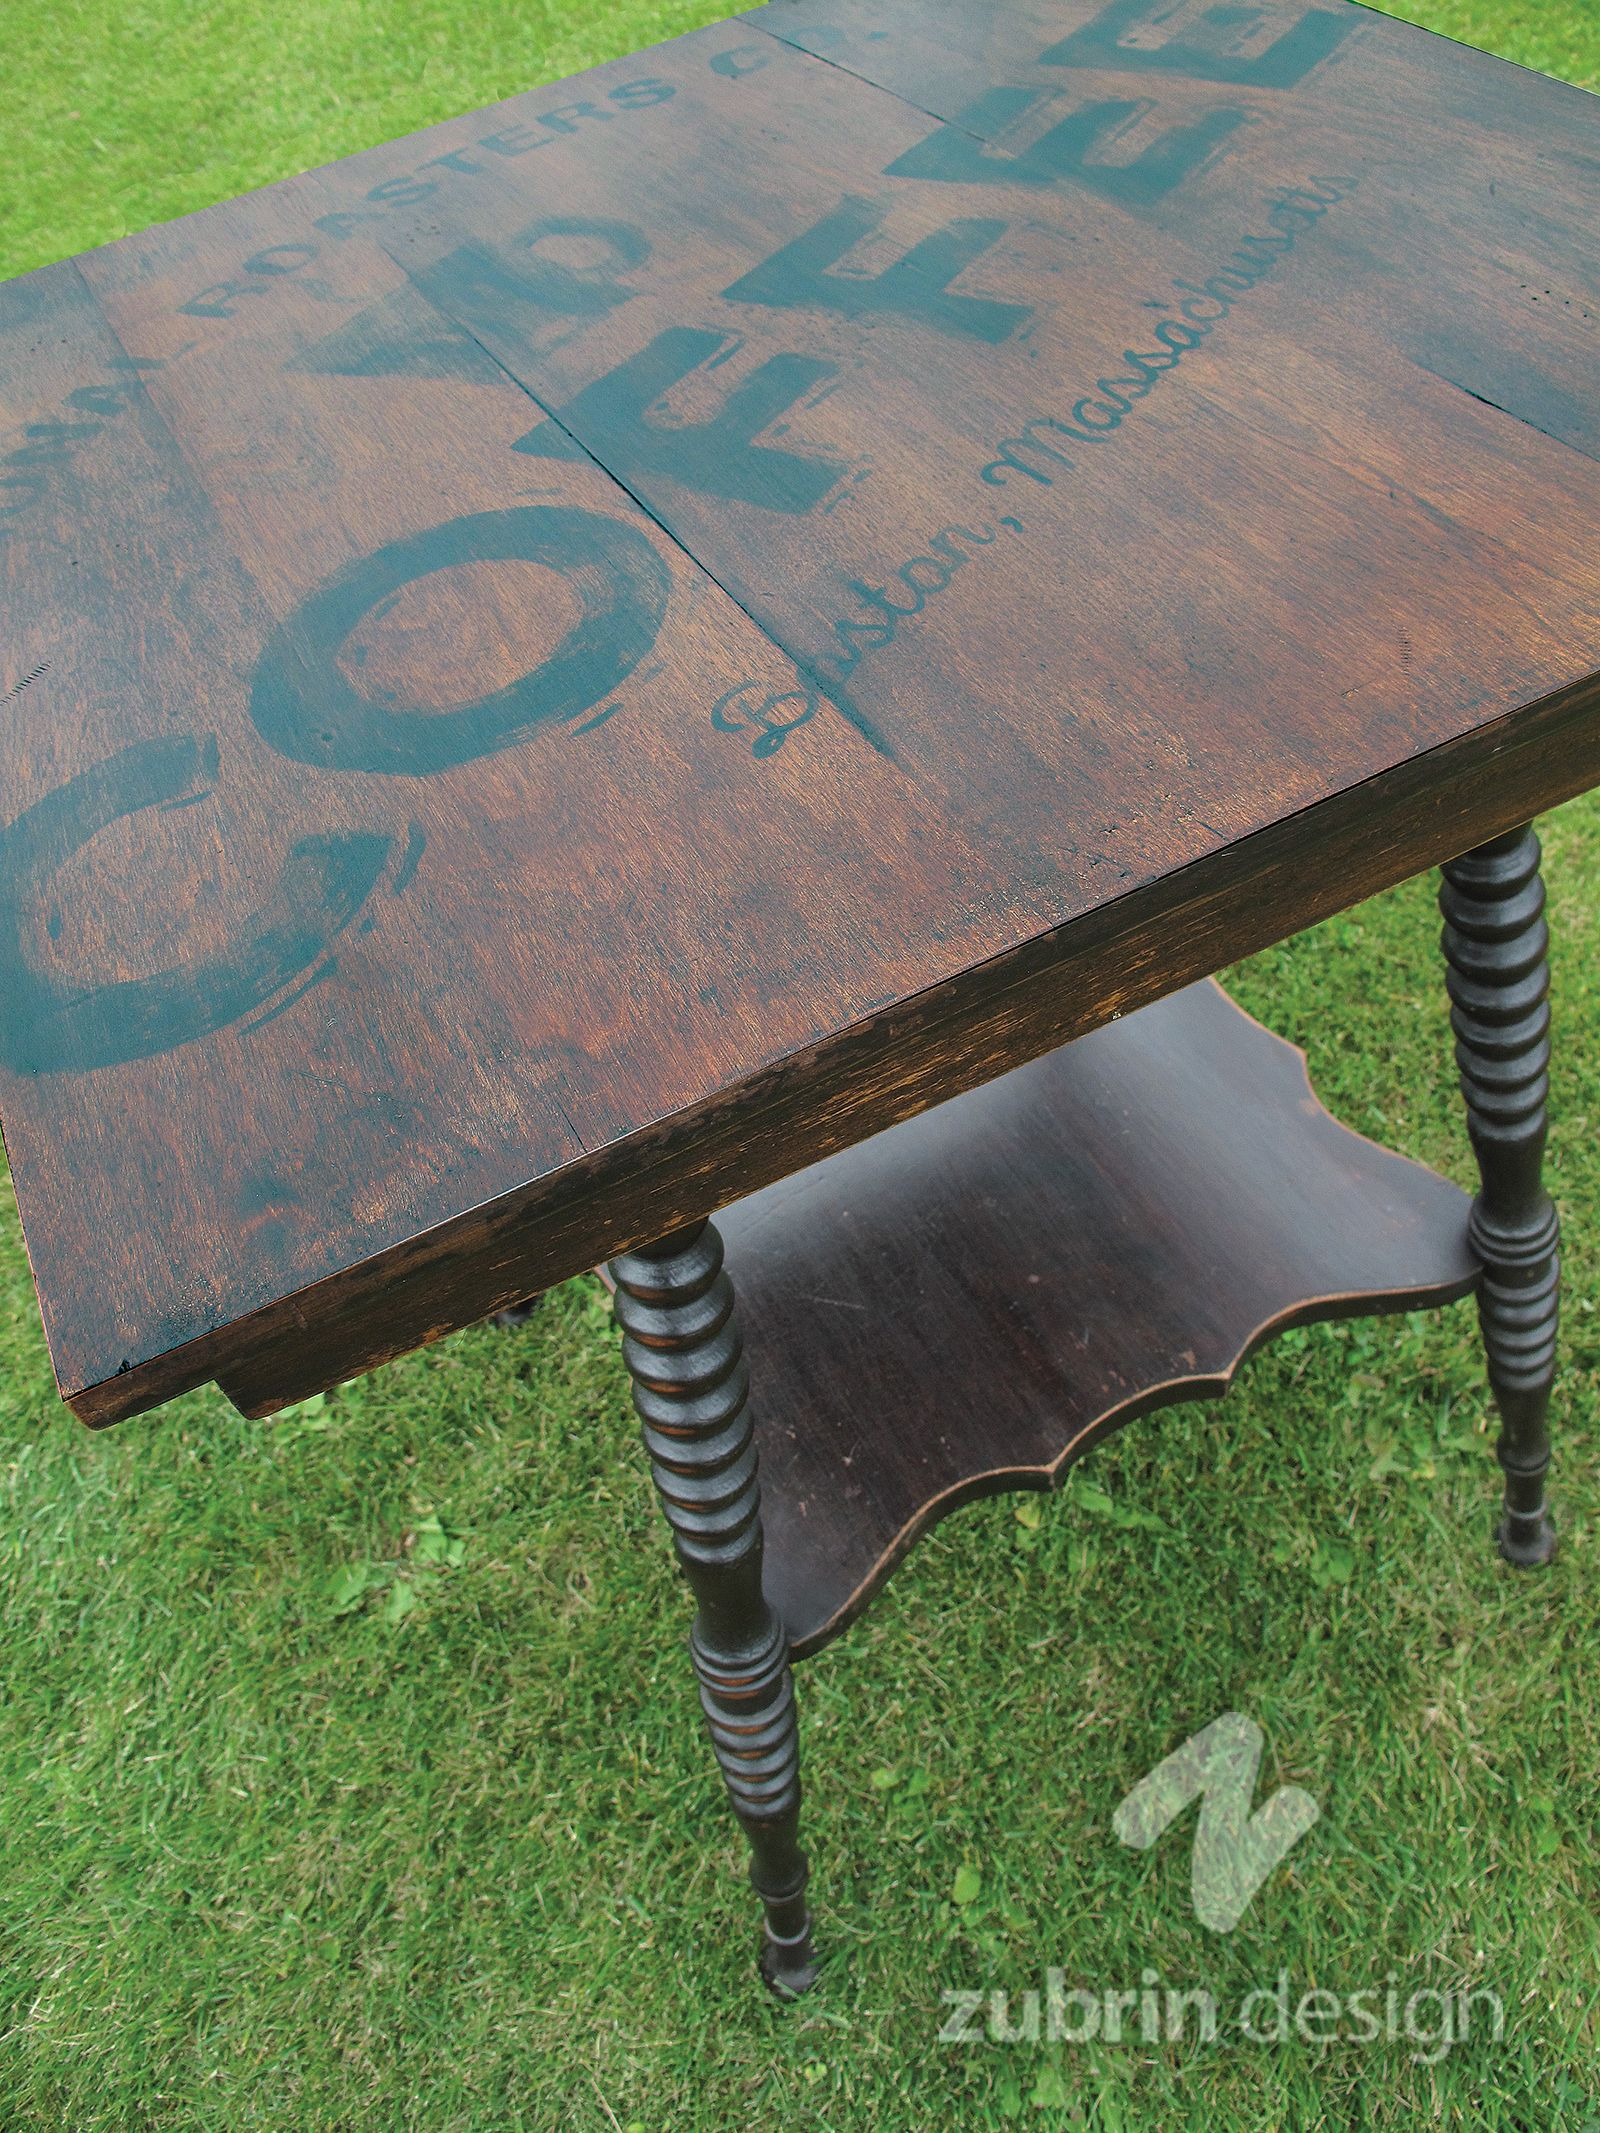 3 Foot High Parlour Table With A 2 Square Top I Came Up My Own Coffee Brand And Painted It On Black Acrylic Paint Dark Stain